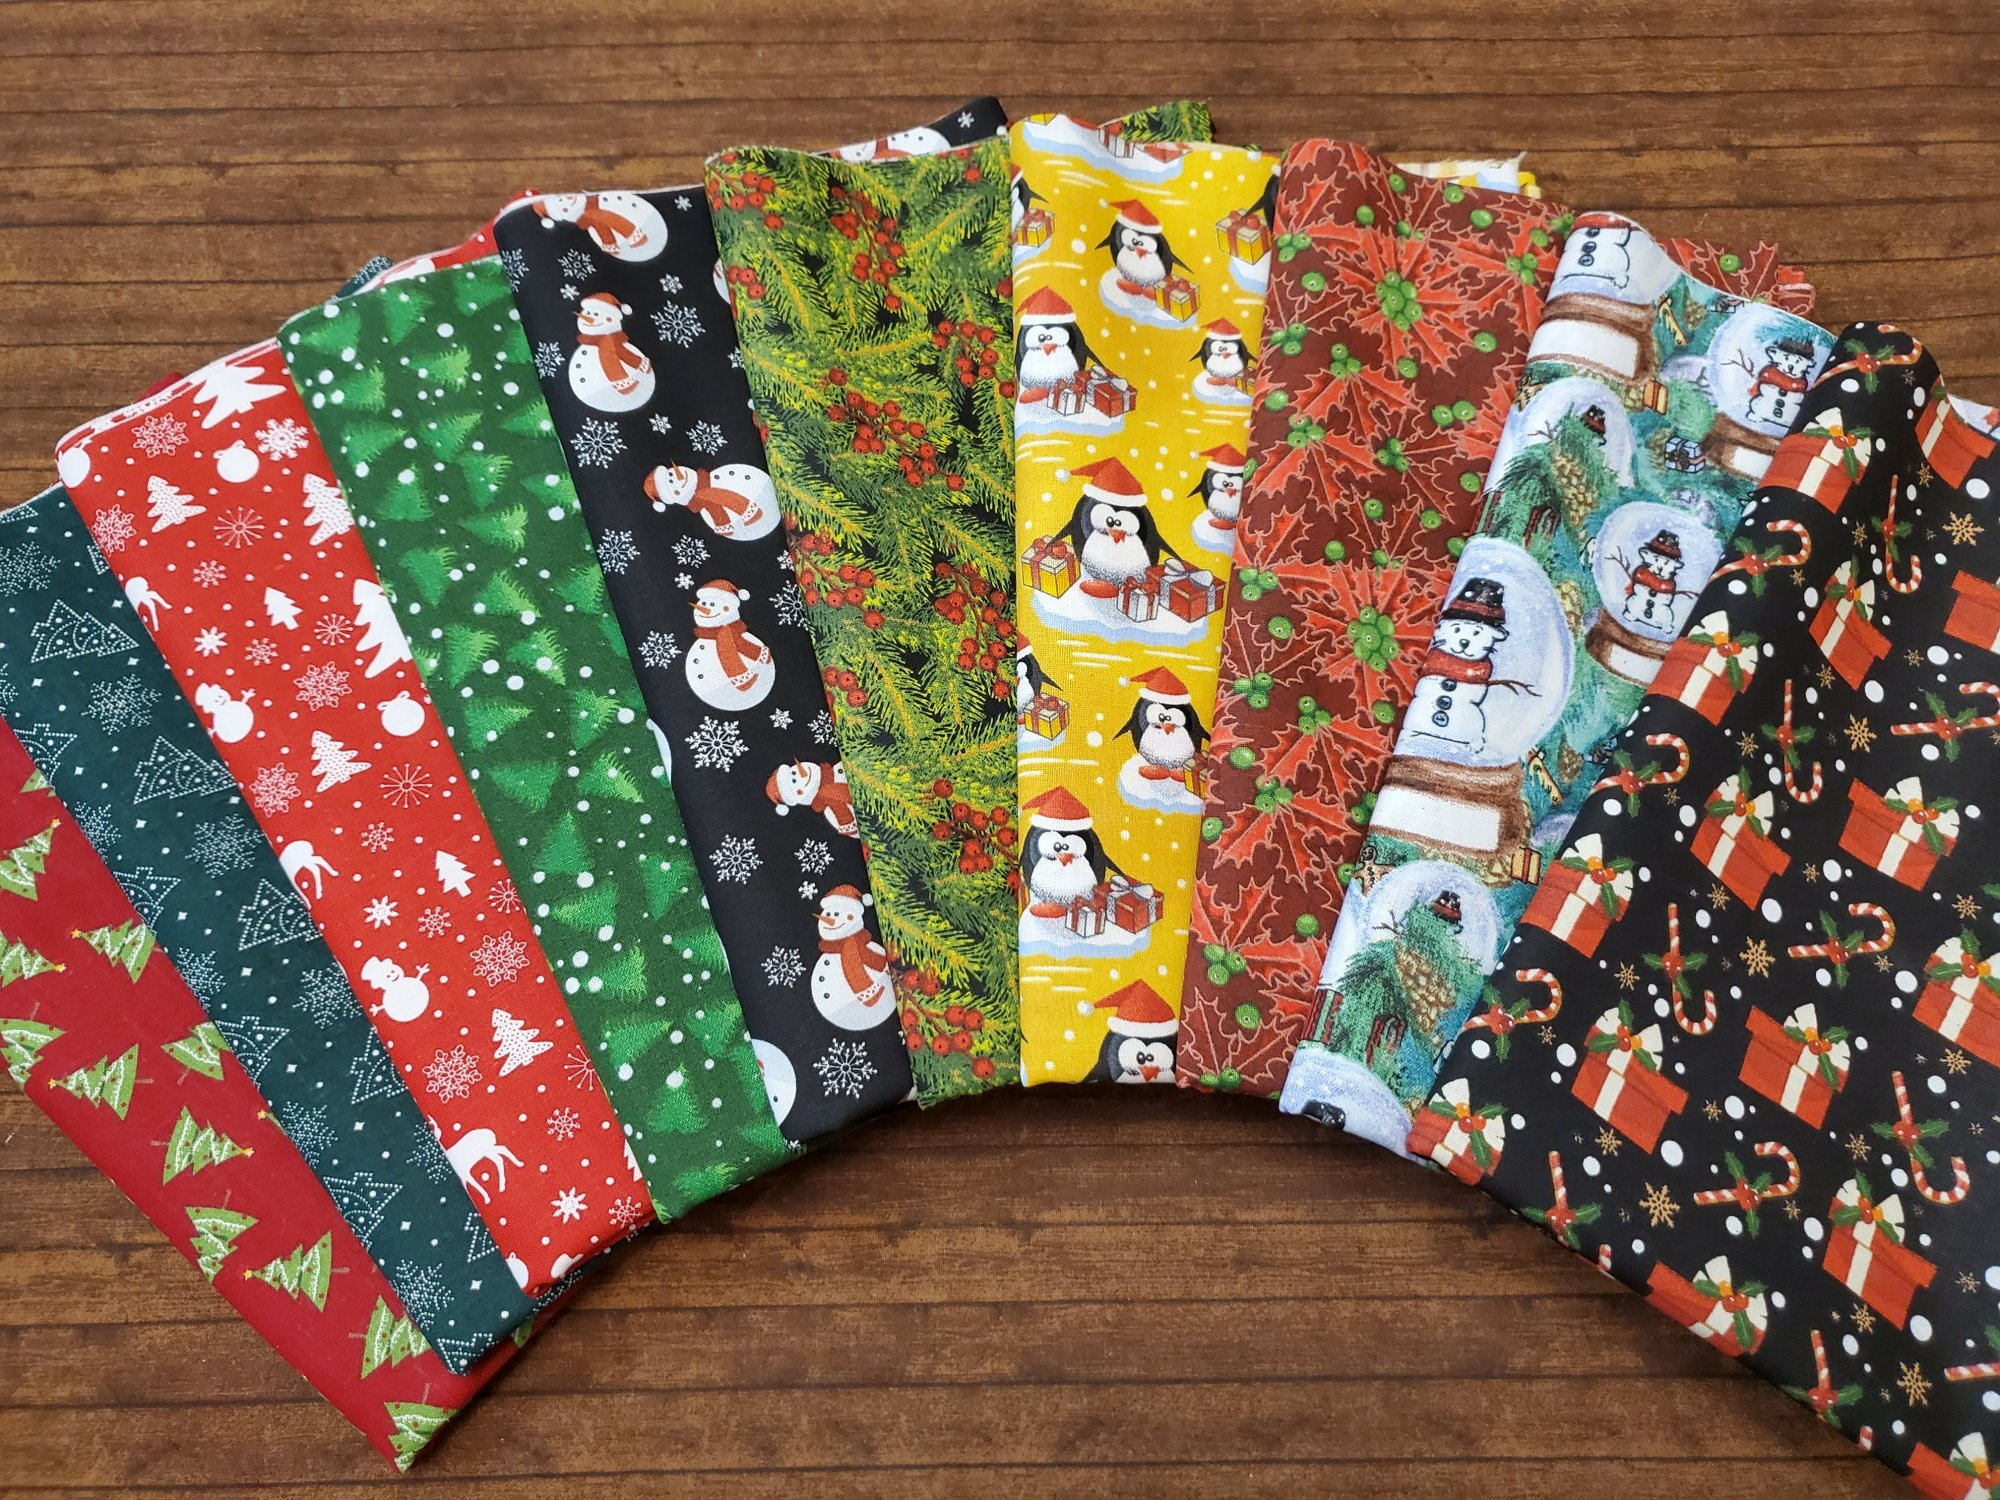 Classically Christmas - Traditional Christmas Themes - 10  Piece Half Yard Bundle Pack snowmen, presents, Christmas trees, holly, pine trees, poinsettias